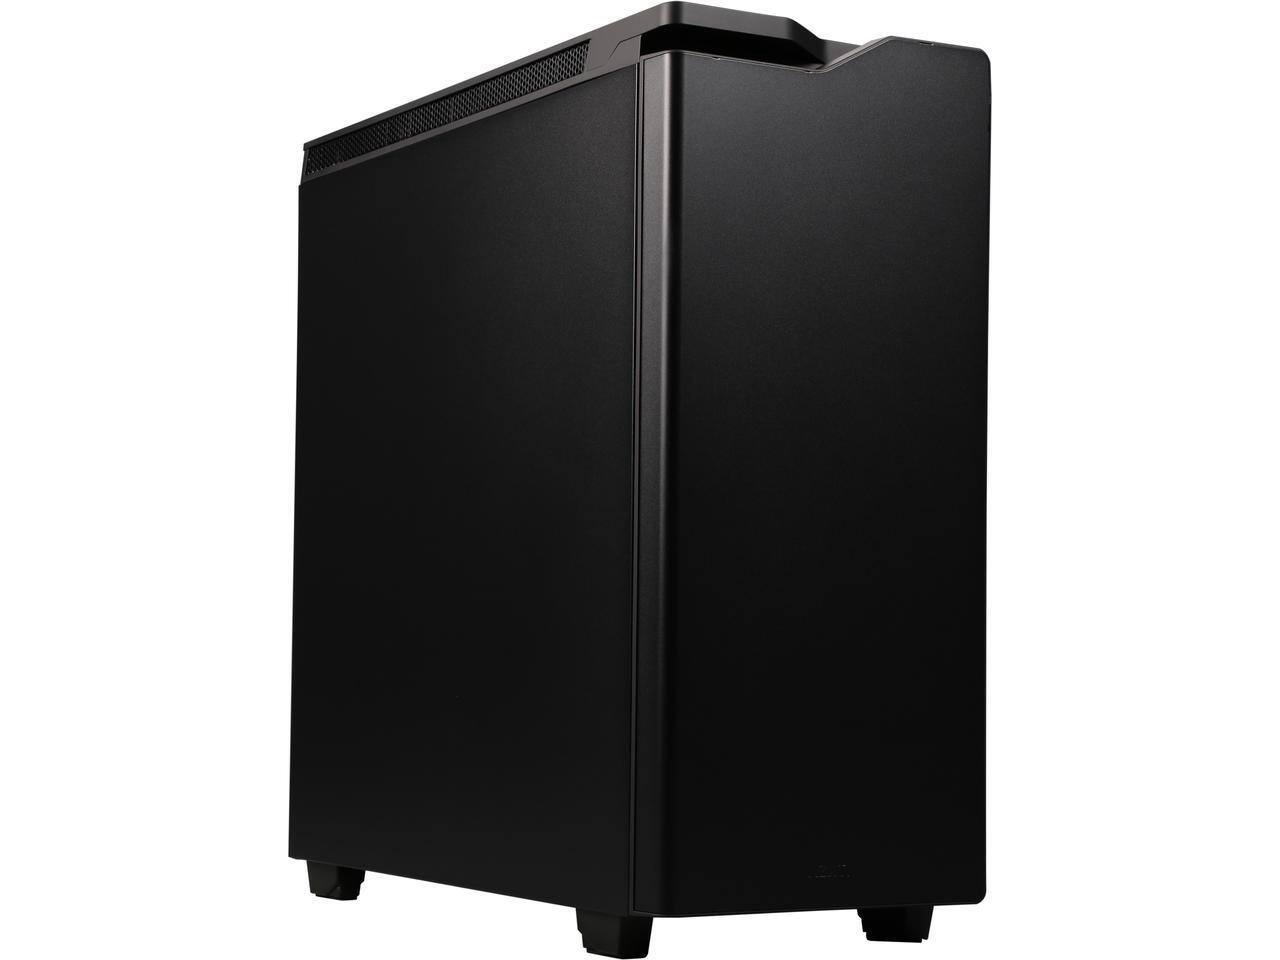 NZXT H440 ATX Steel Mid Tower Computer Case $80 after $30 Rebate + Free S/H @ Newegg